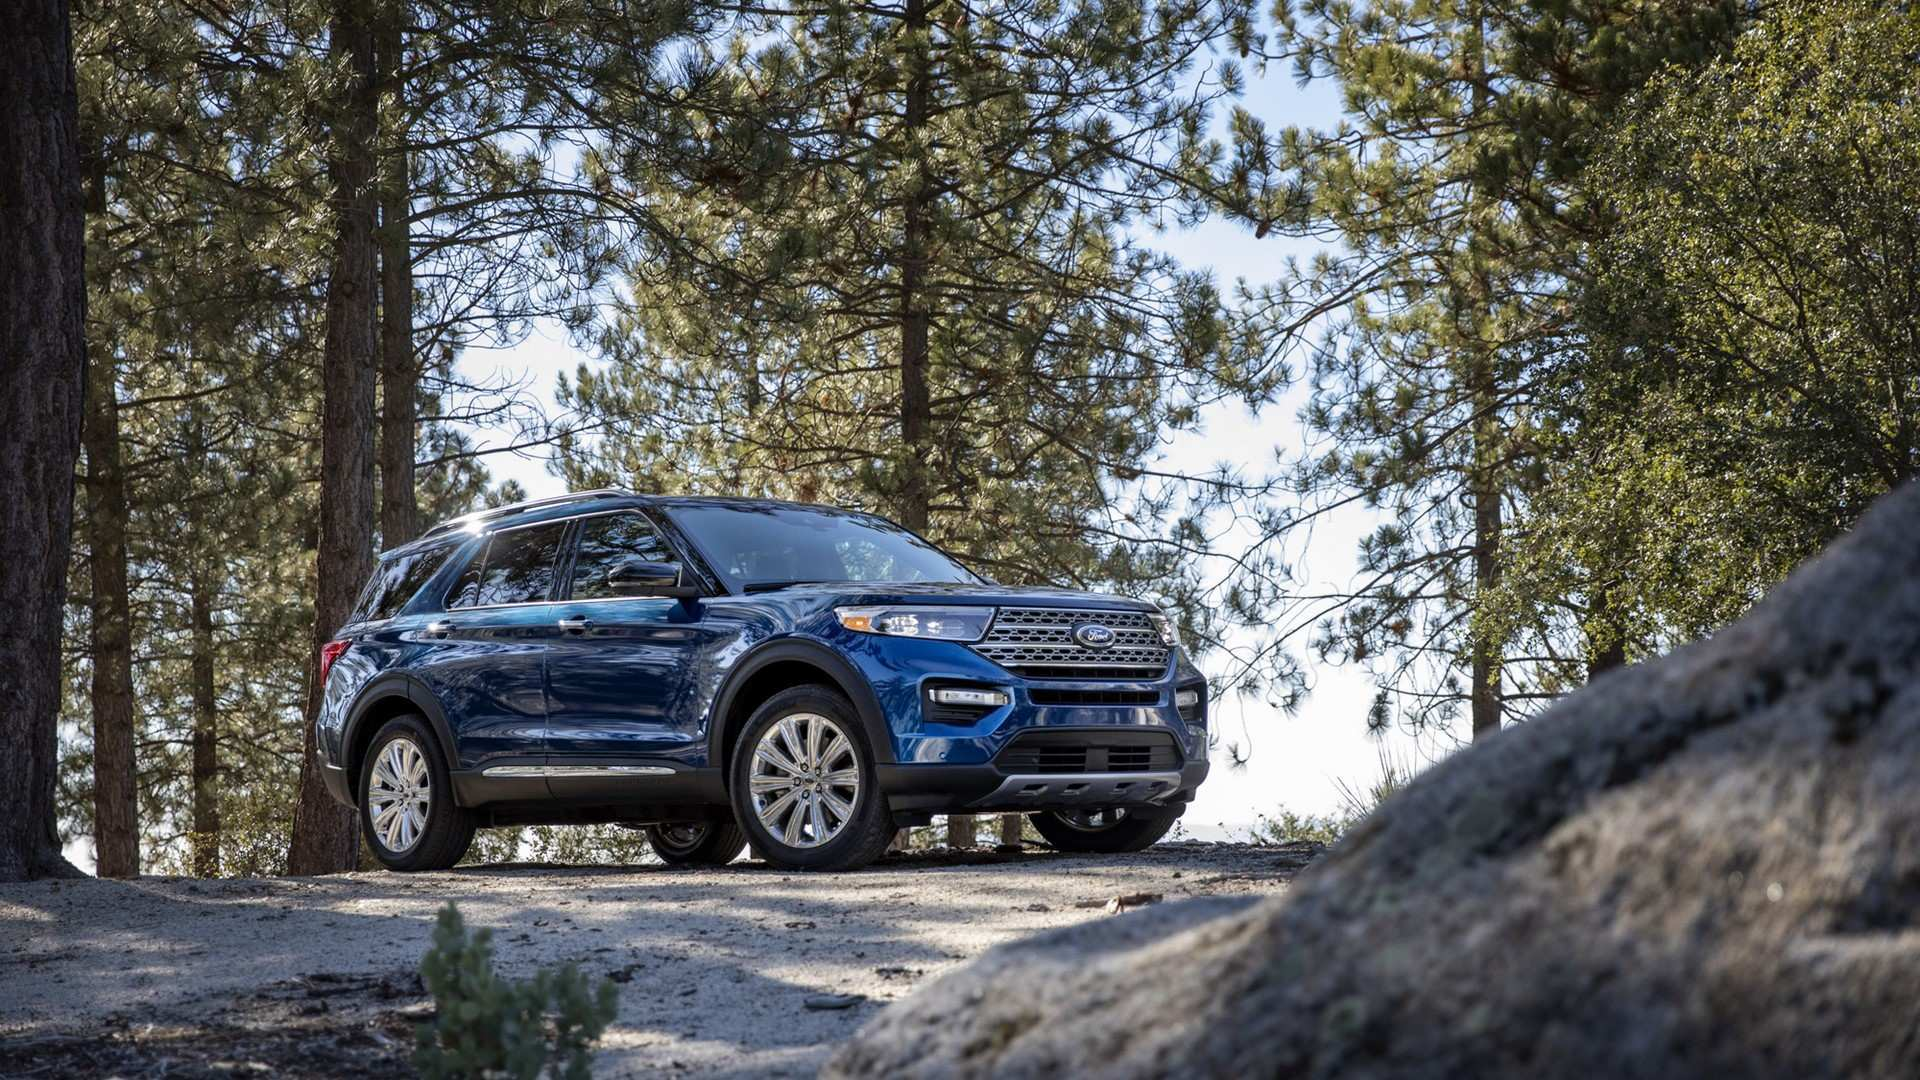 66 All New Ford Unveils The New 2020 Explorer Prices